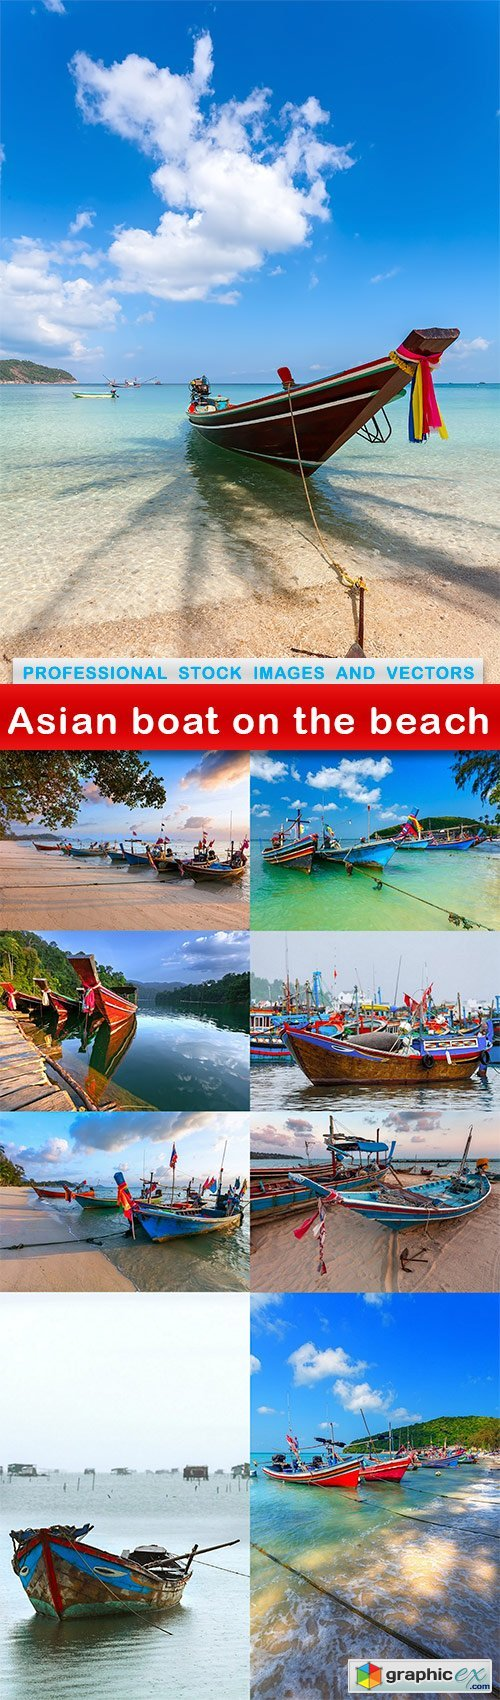 Asian boat on the beach - 9 UHQ JPEG